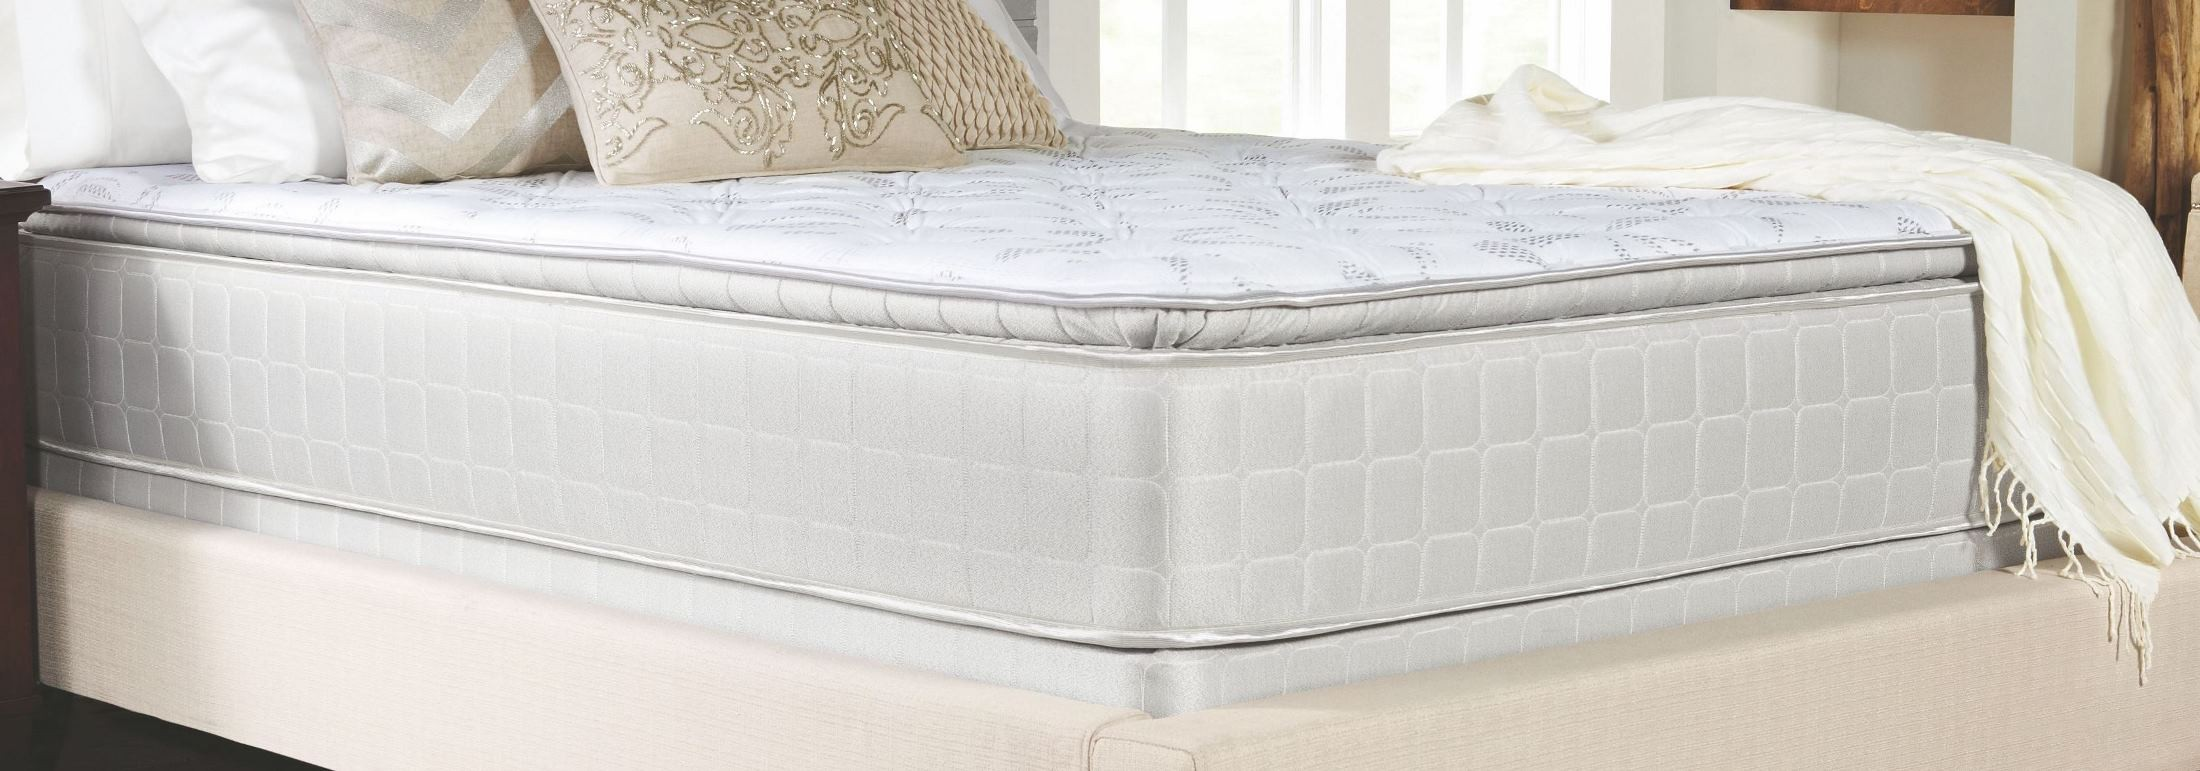 Pillow Top King Mattress Marbella Ii Gray Pillow Top King Mattress With Foundation